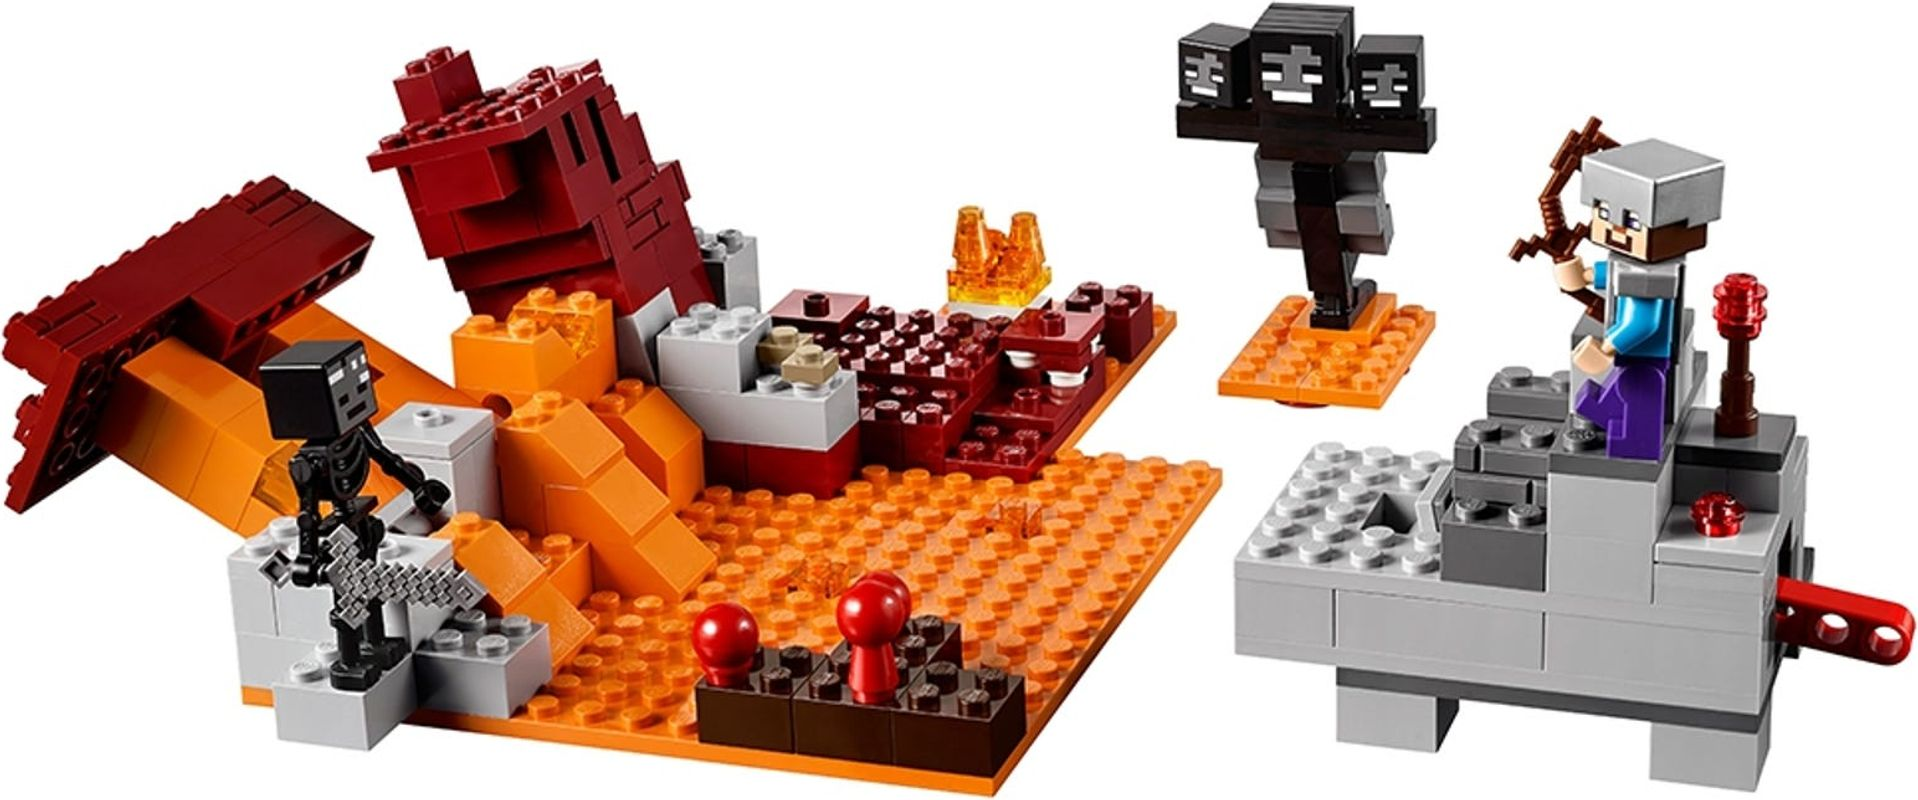 The Wither components